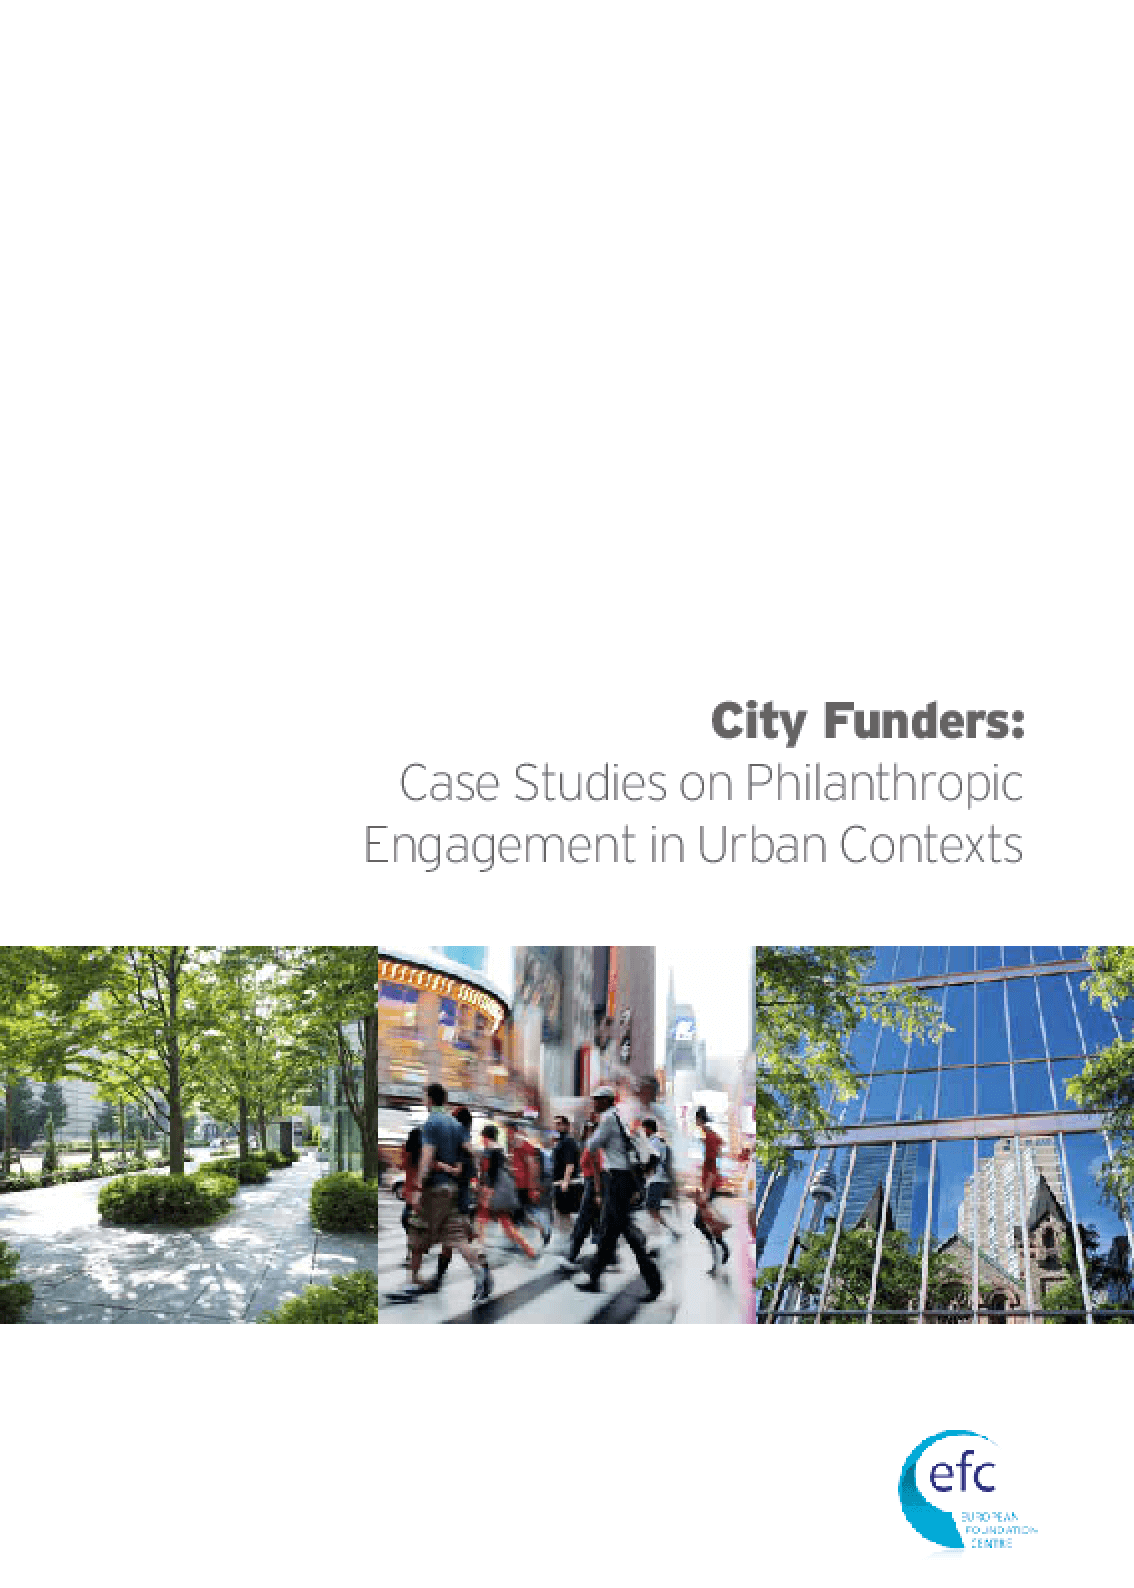 City Funders: Case Studies on Philanthropic Engagement in Urban Contexts